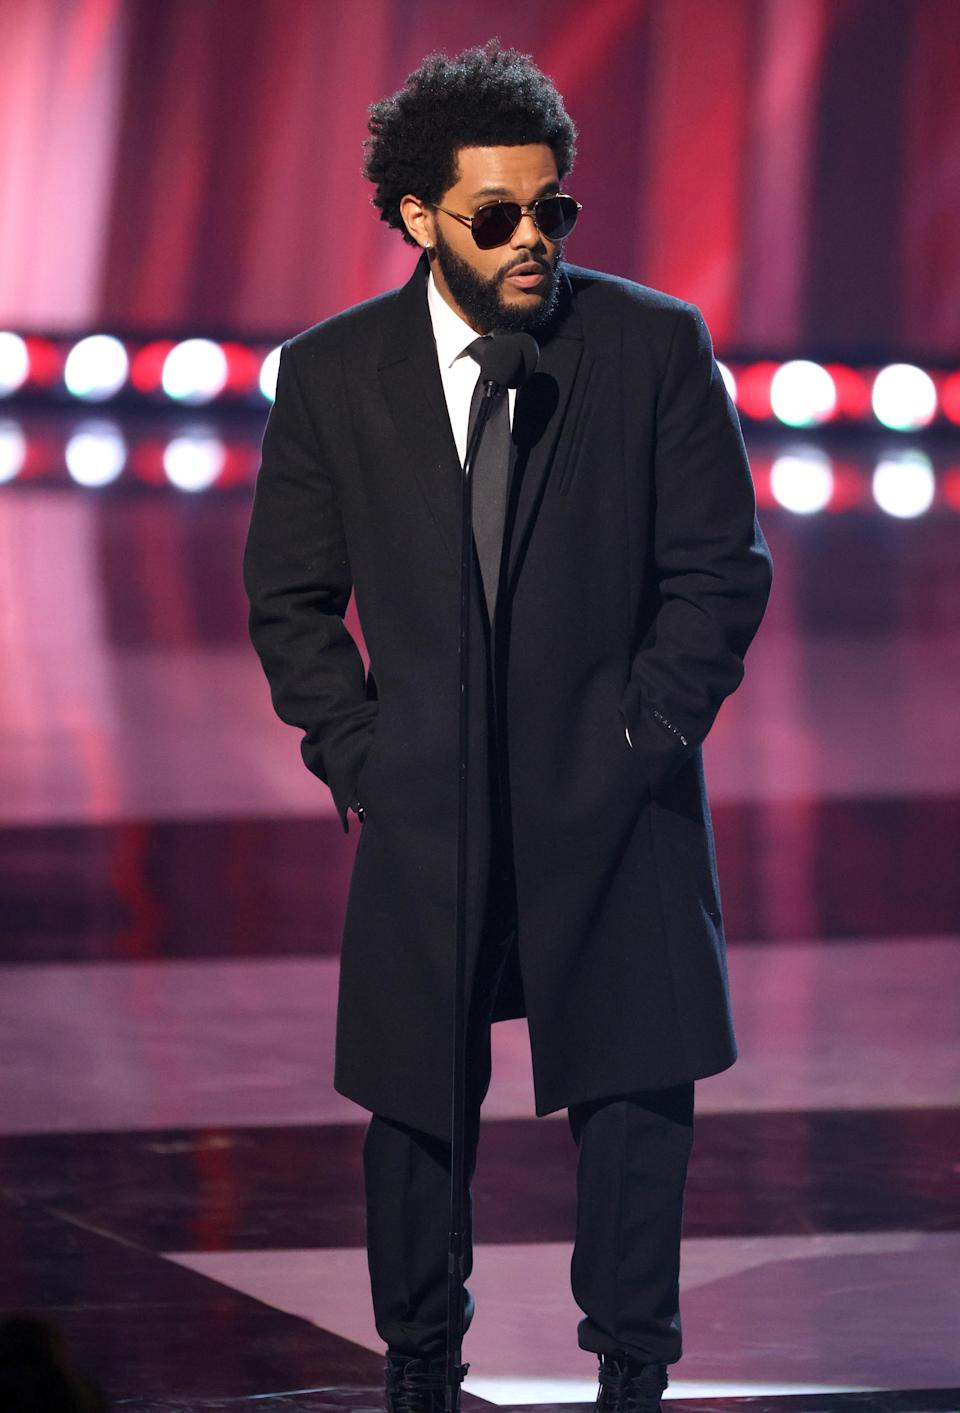 The Weeknd is the king of mystery so it's only right that he'd wear all black with tinted shades to match.